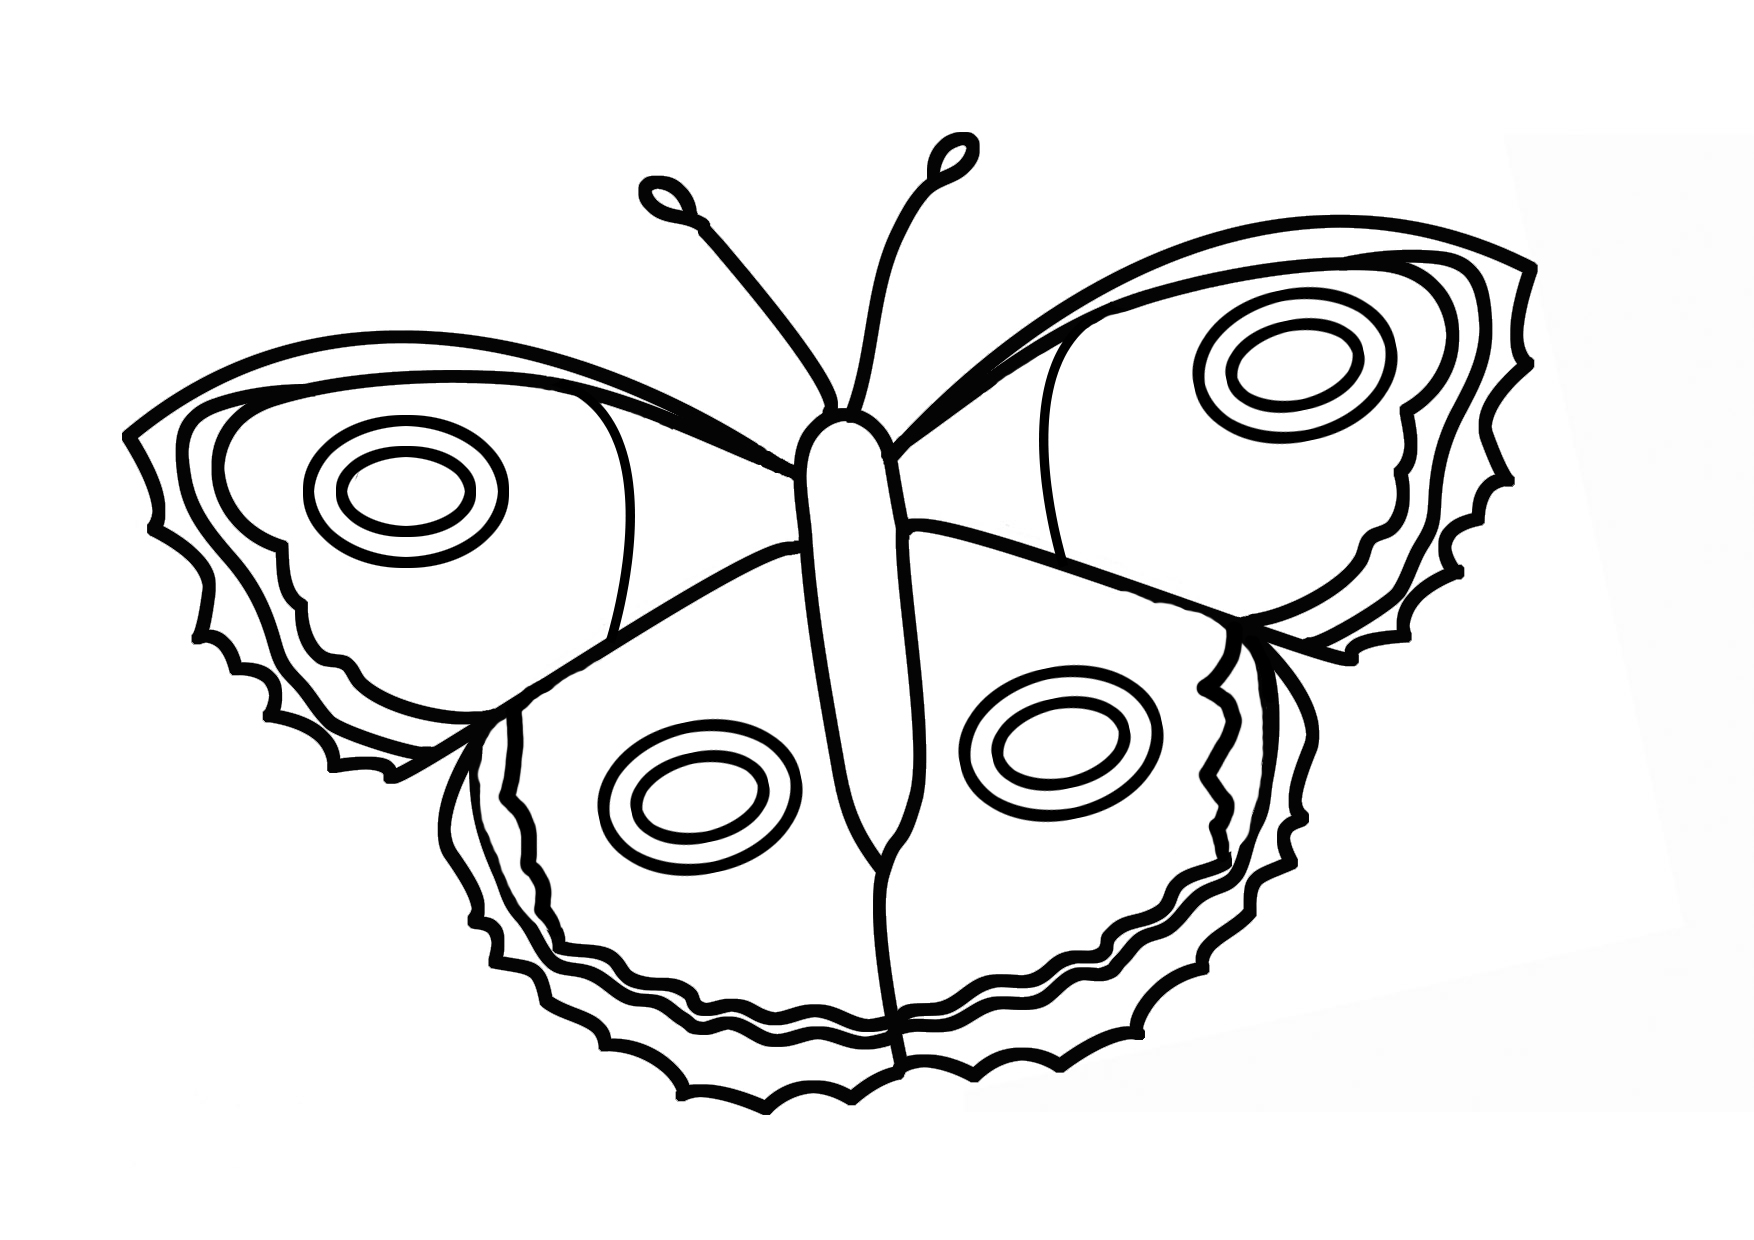 cocoon coloring pages - photo#32